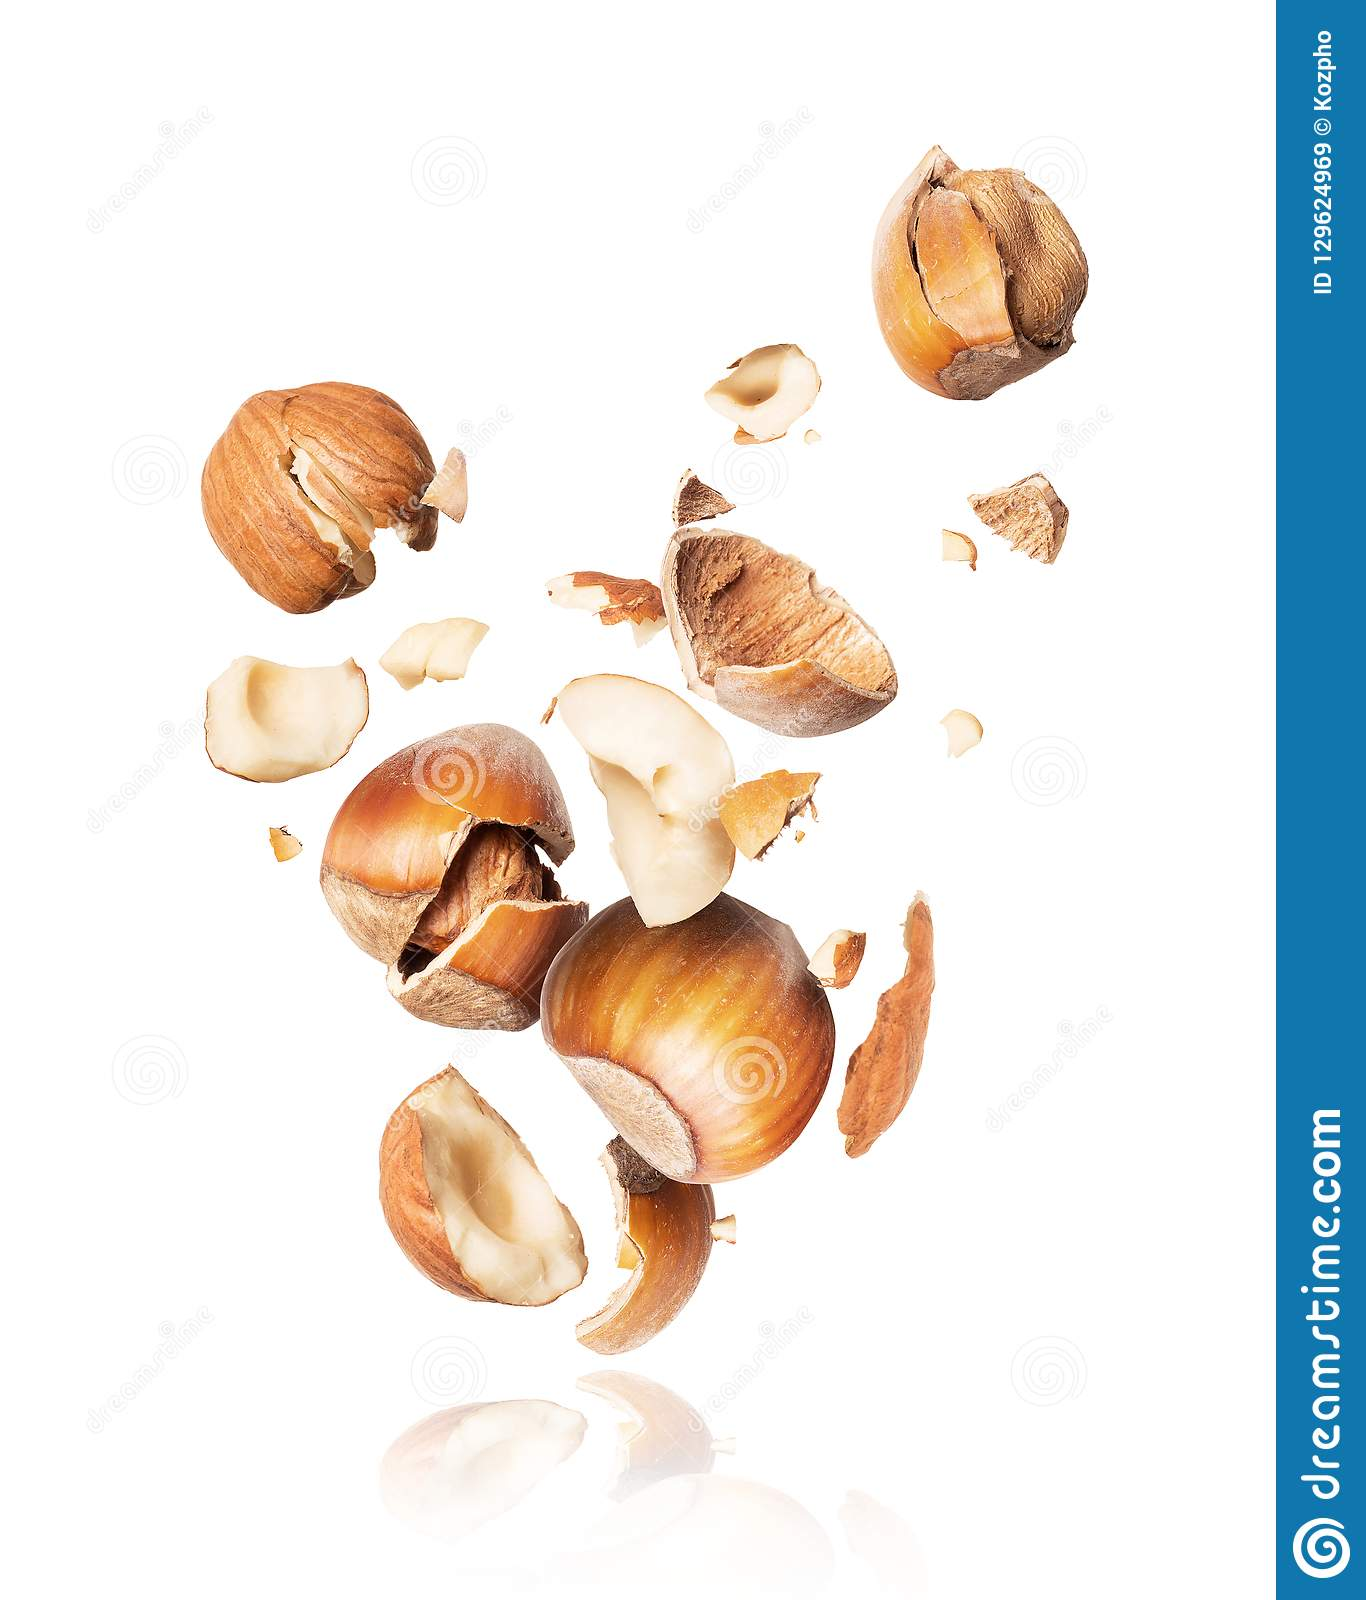 Hazelnuts crushed in the air close-up, isolated on white